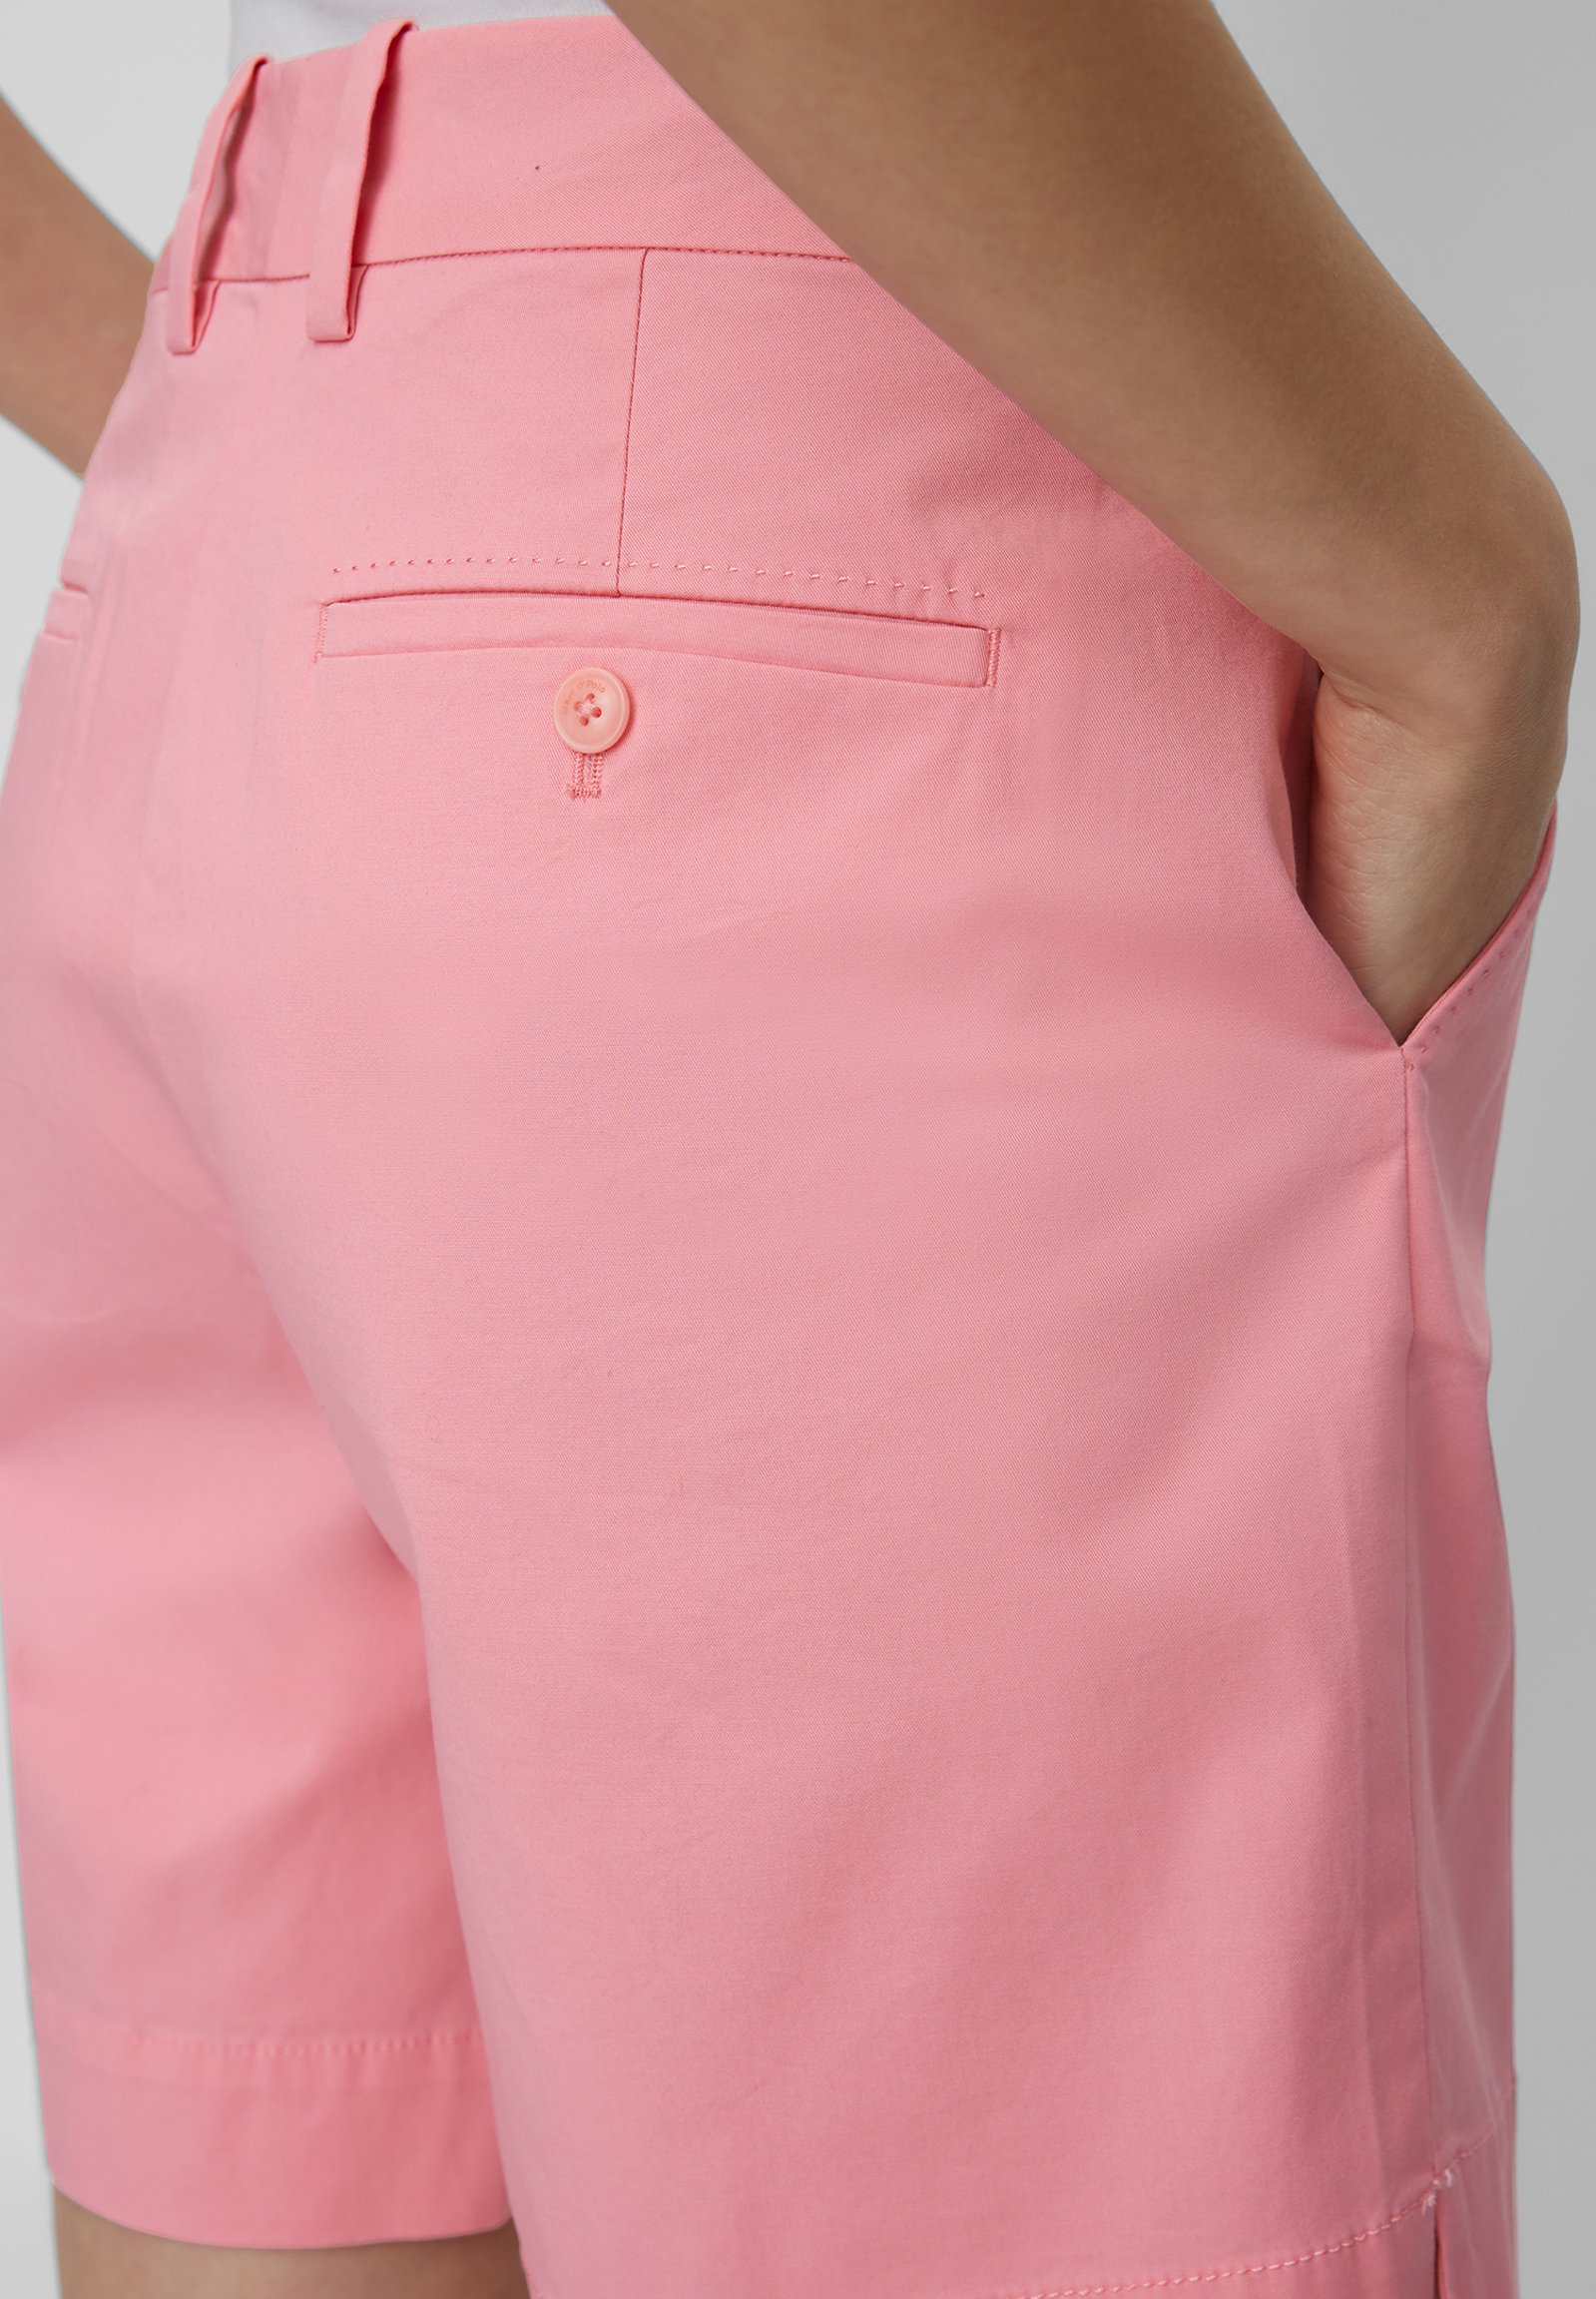 Marc O'Polo Shorts - sunlit coral